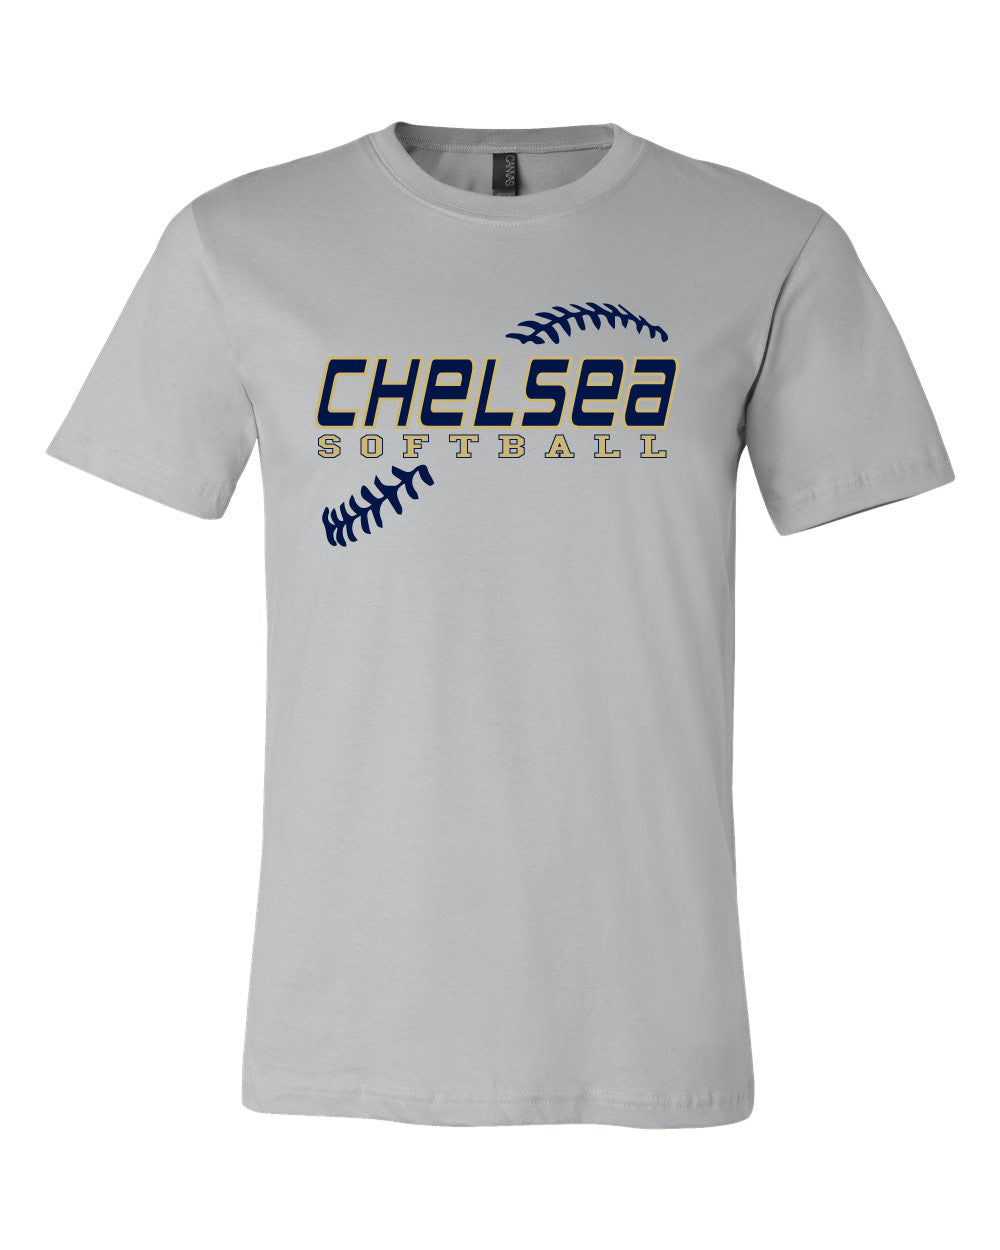 Adult Chelsea Softball Premium T-shirt